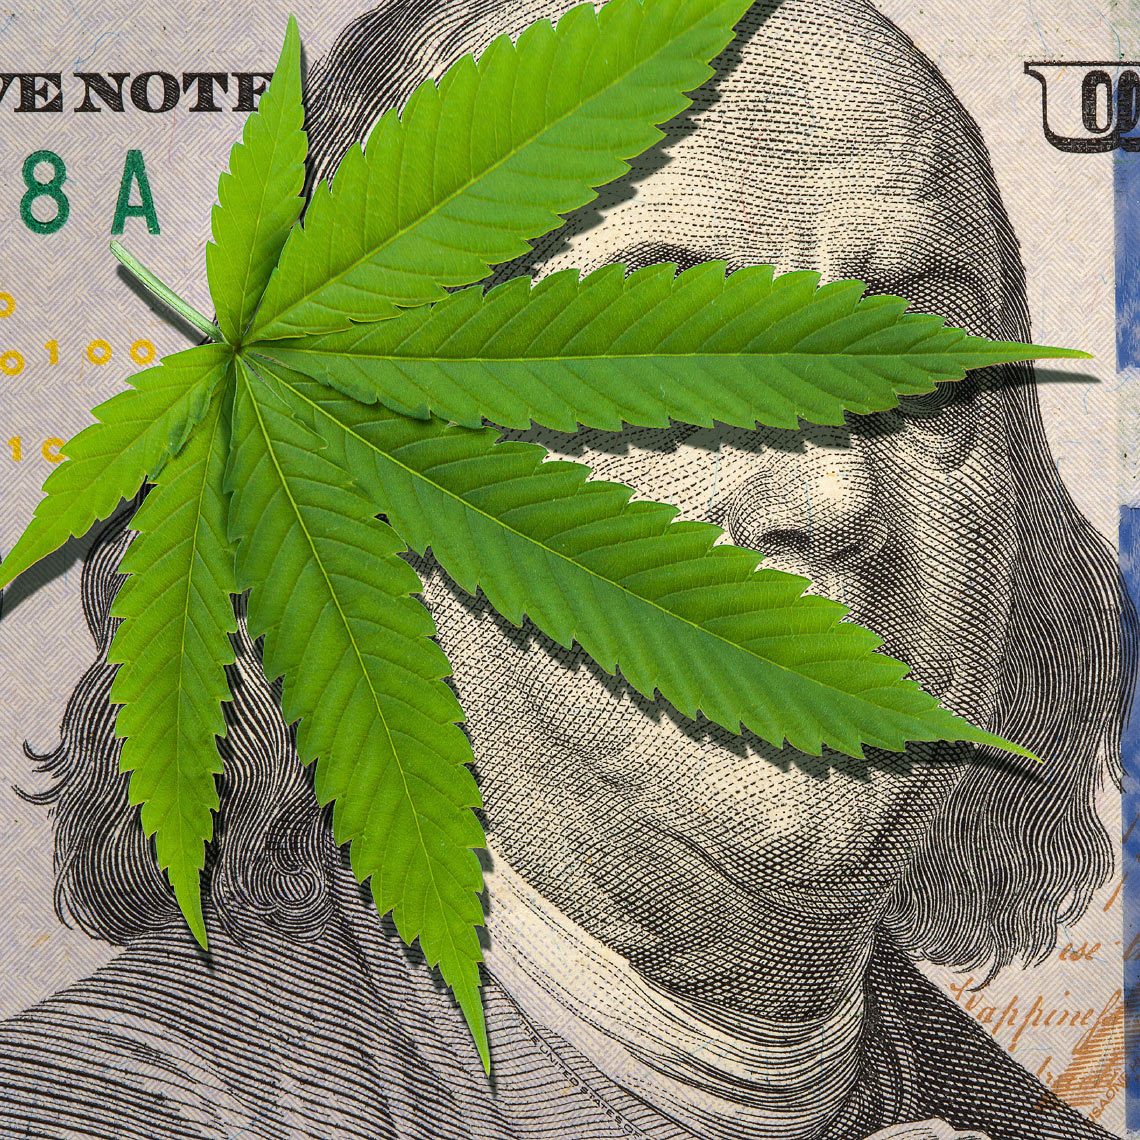 Marijuana business taxes, regulations illustration by John Kuczala